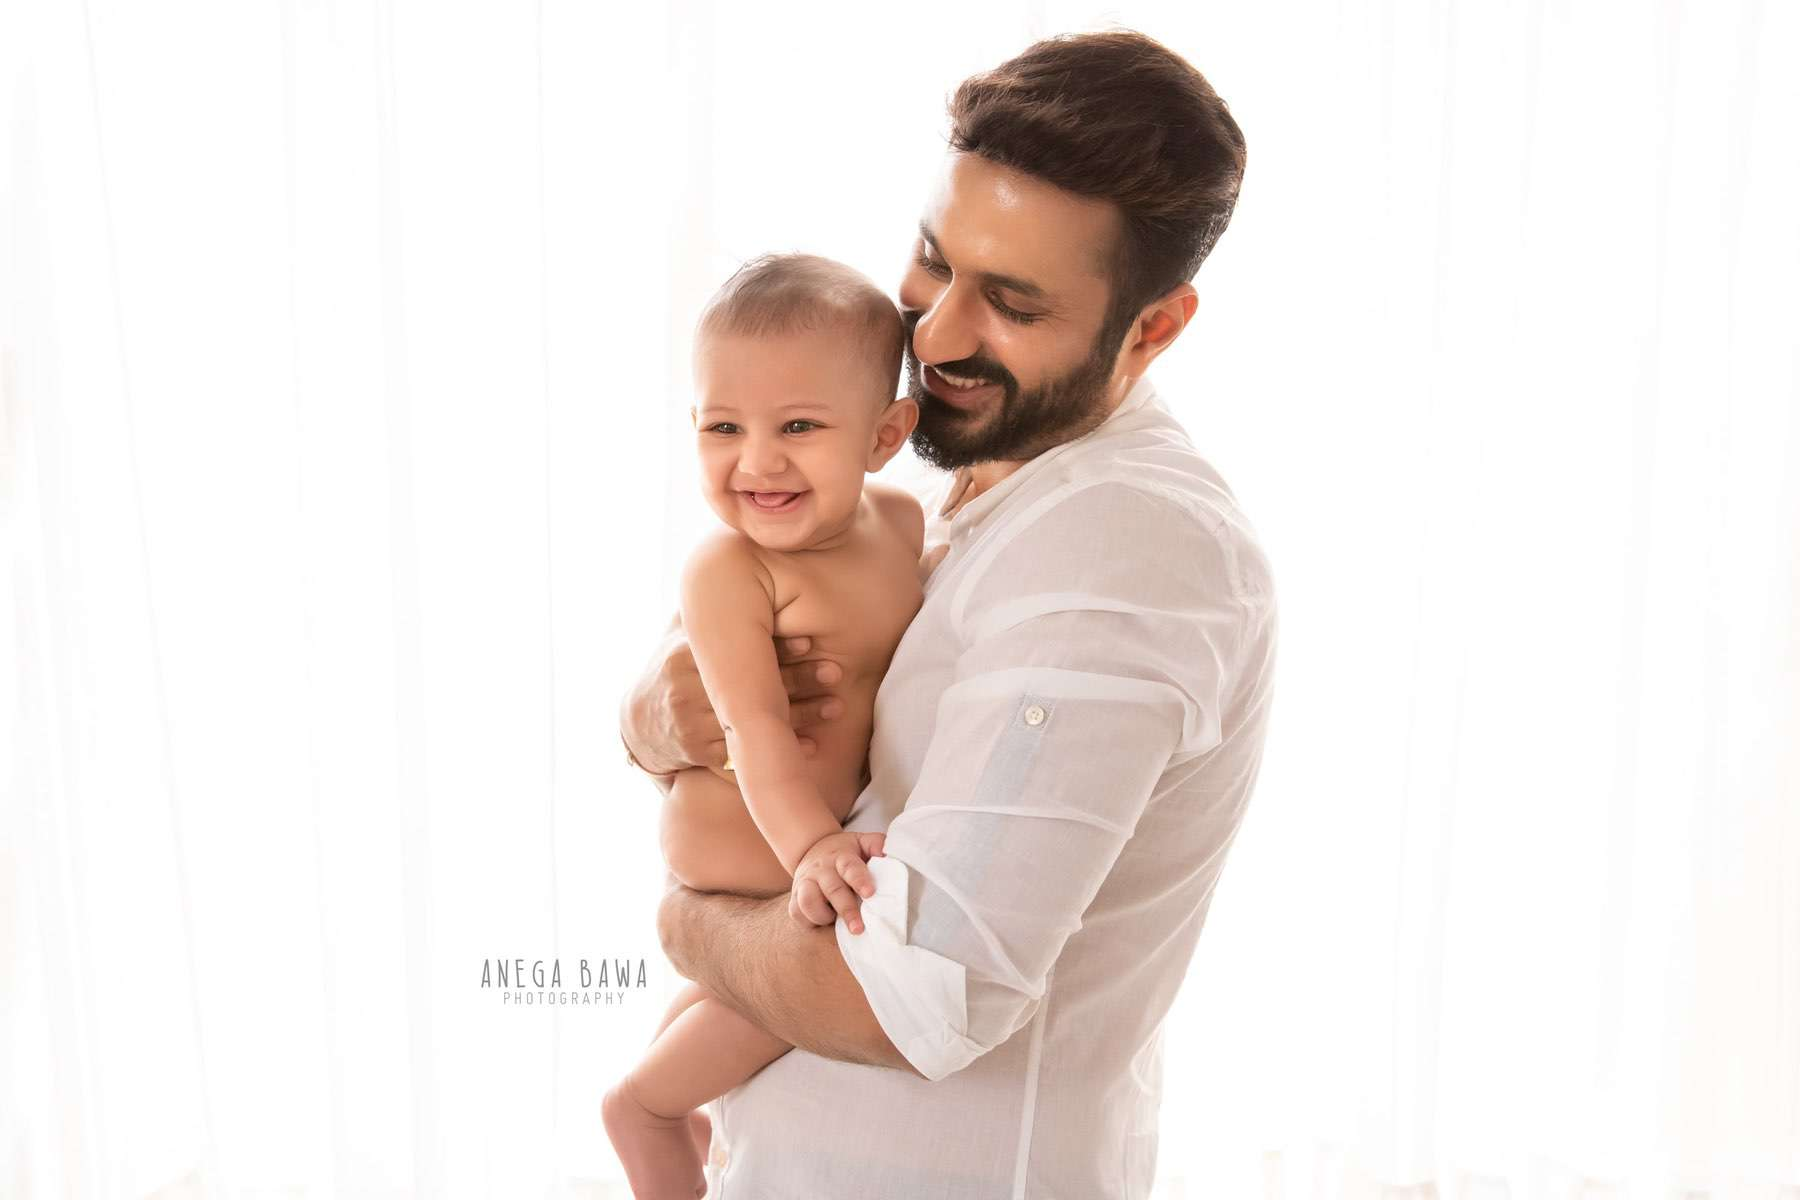 245607-white-background-father-and-baby-photography-delhi-4-5-6-7-months-baby-photoshoot-gurgaon-anega-bawa